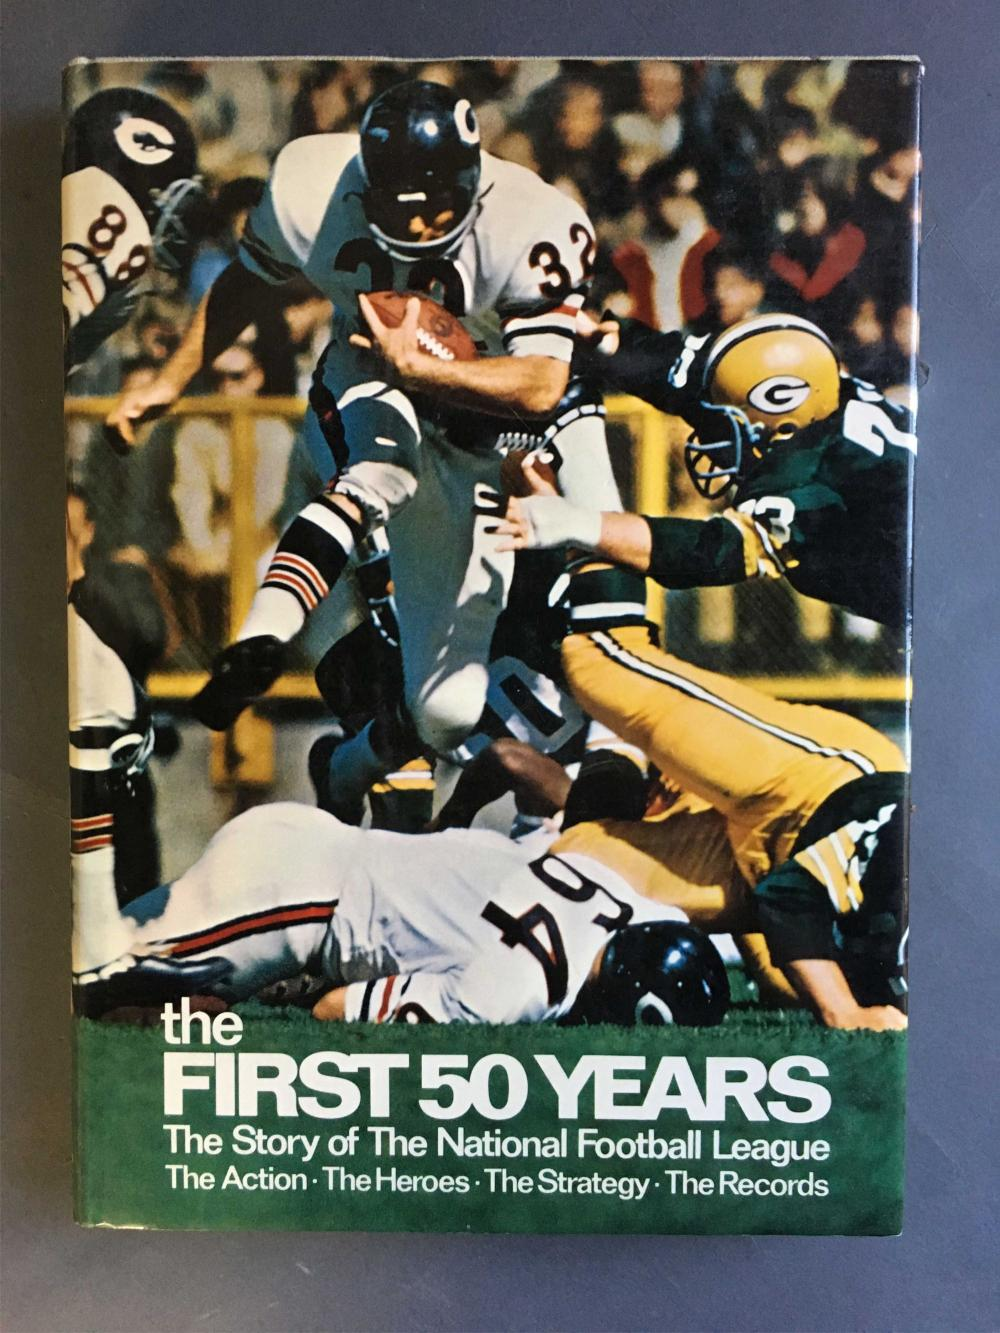 The First Fifty Years. Signed by 22+ NFL players.